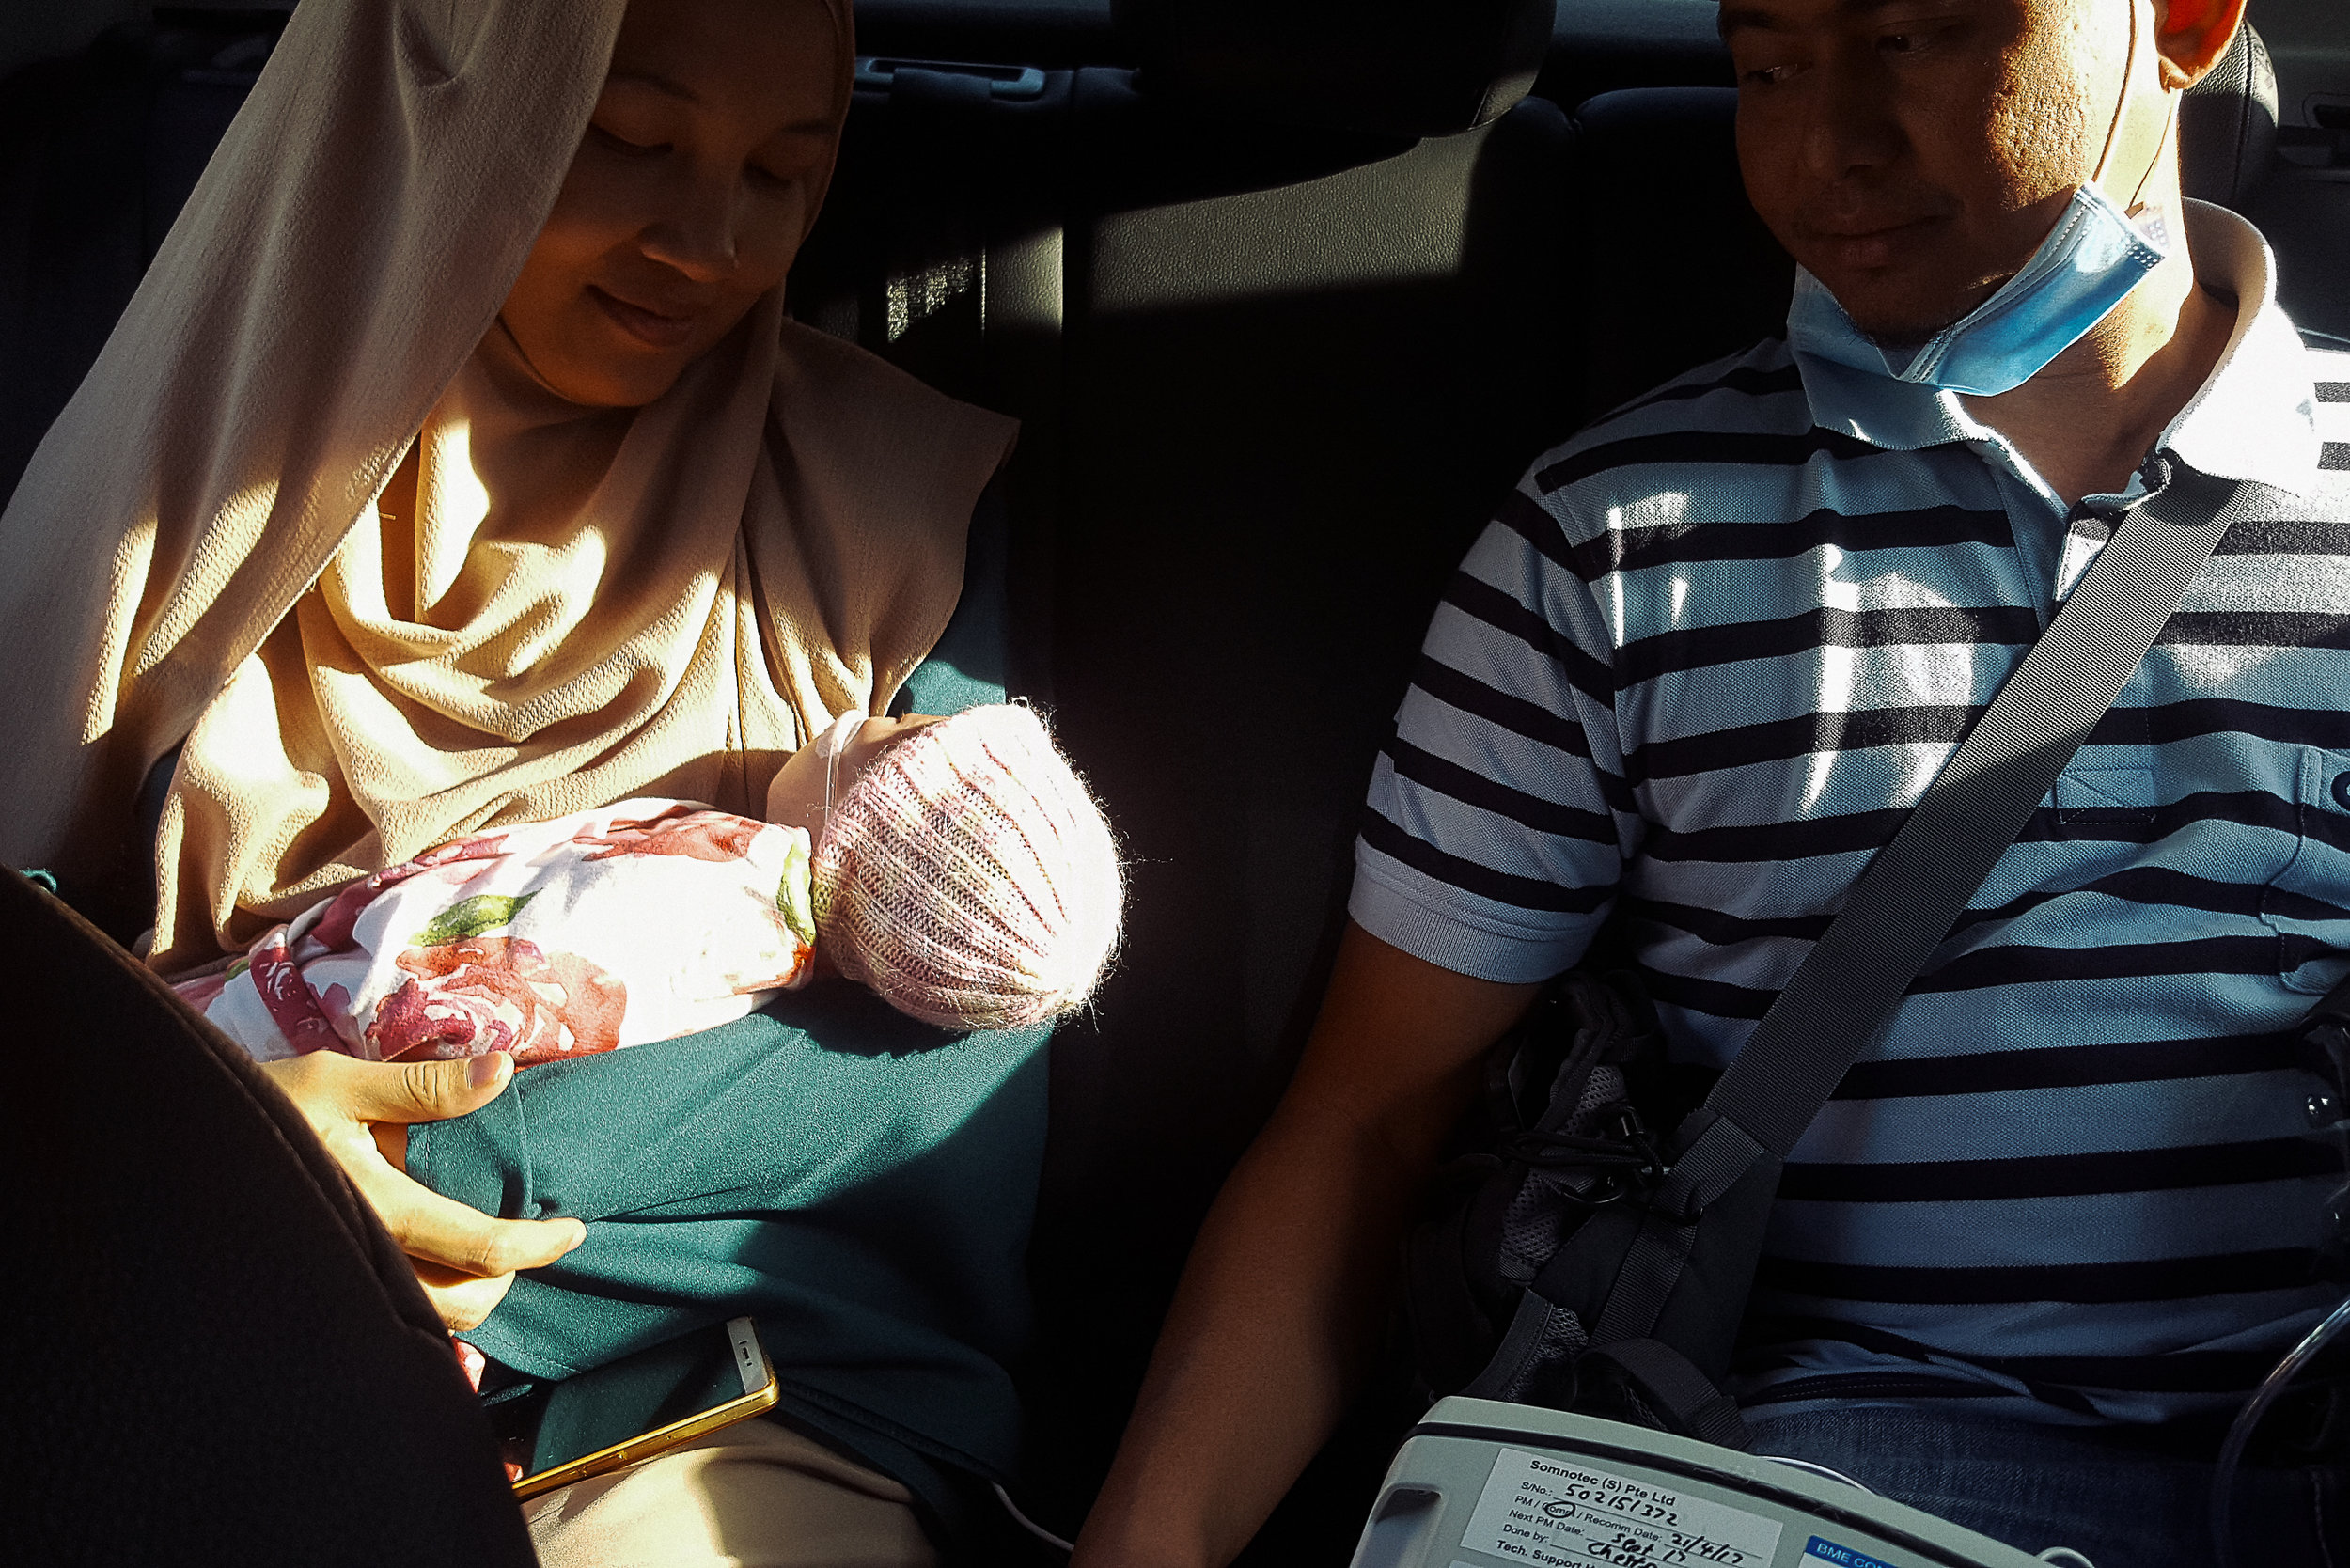 Despite the frenzied check-out process, both parents were still happy to bring Hana home.  Hana continues to be wired to the heart rate monitor and fixed onto the oxygen tank for support on the journey back.